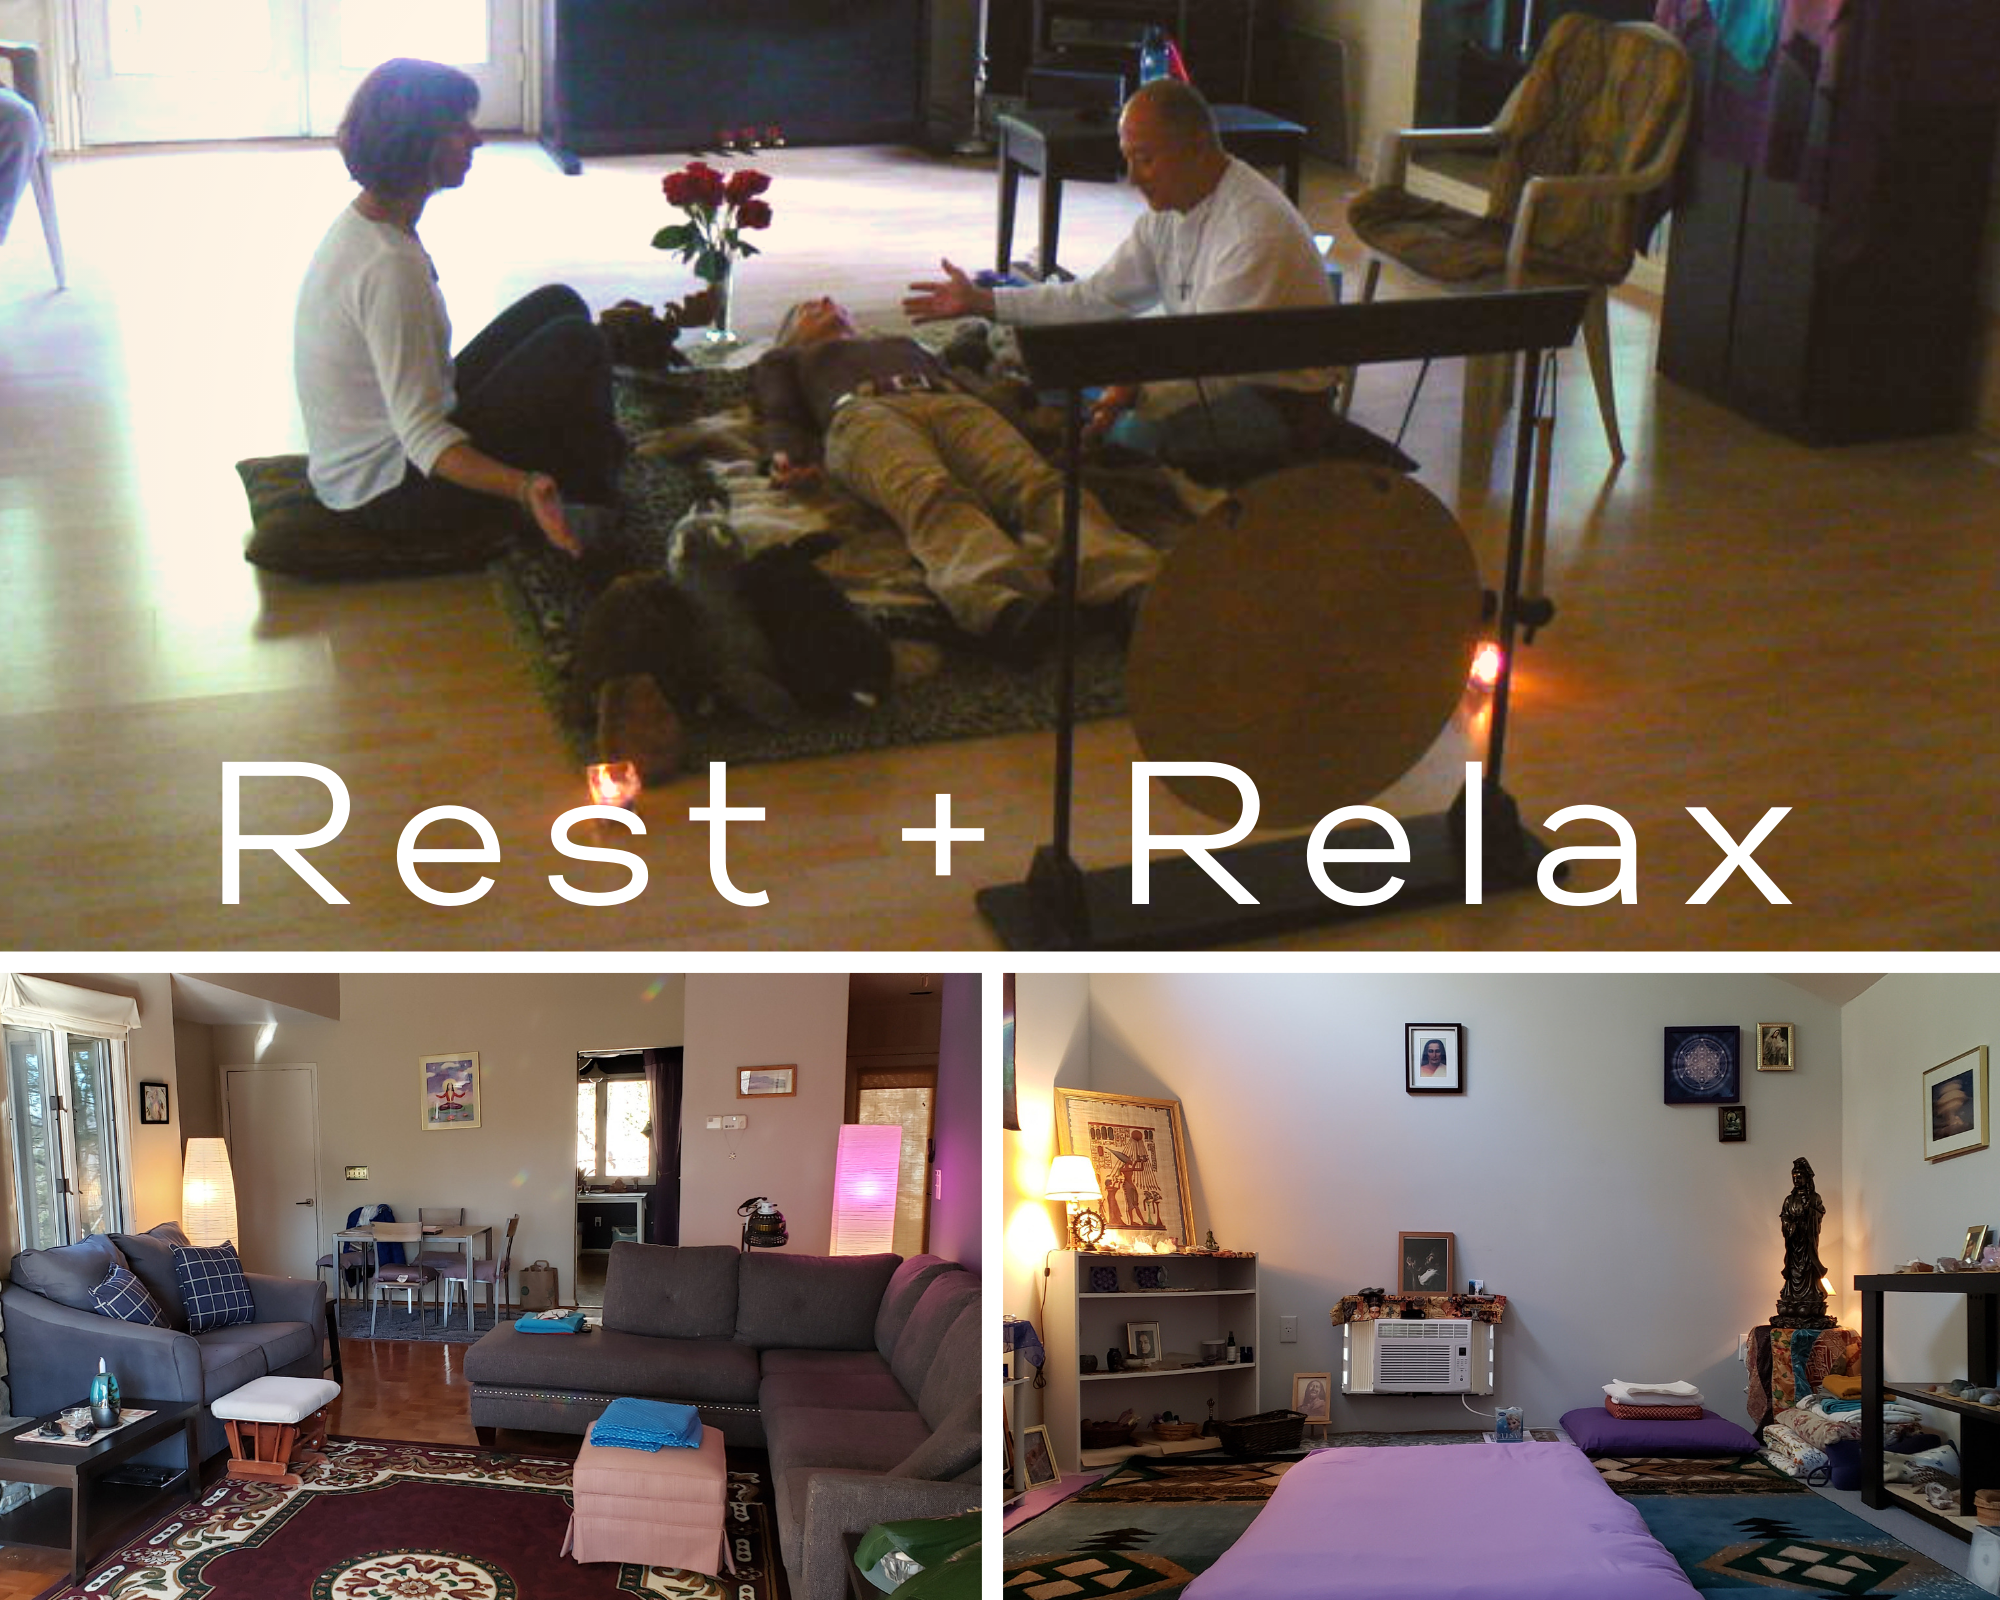 rest-and-relax-retreat-weekend-for-couples-in-asheville-nc-with-kenji-kumara